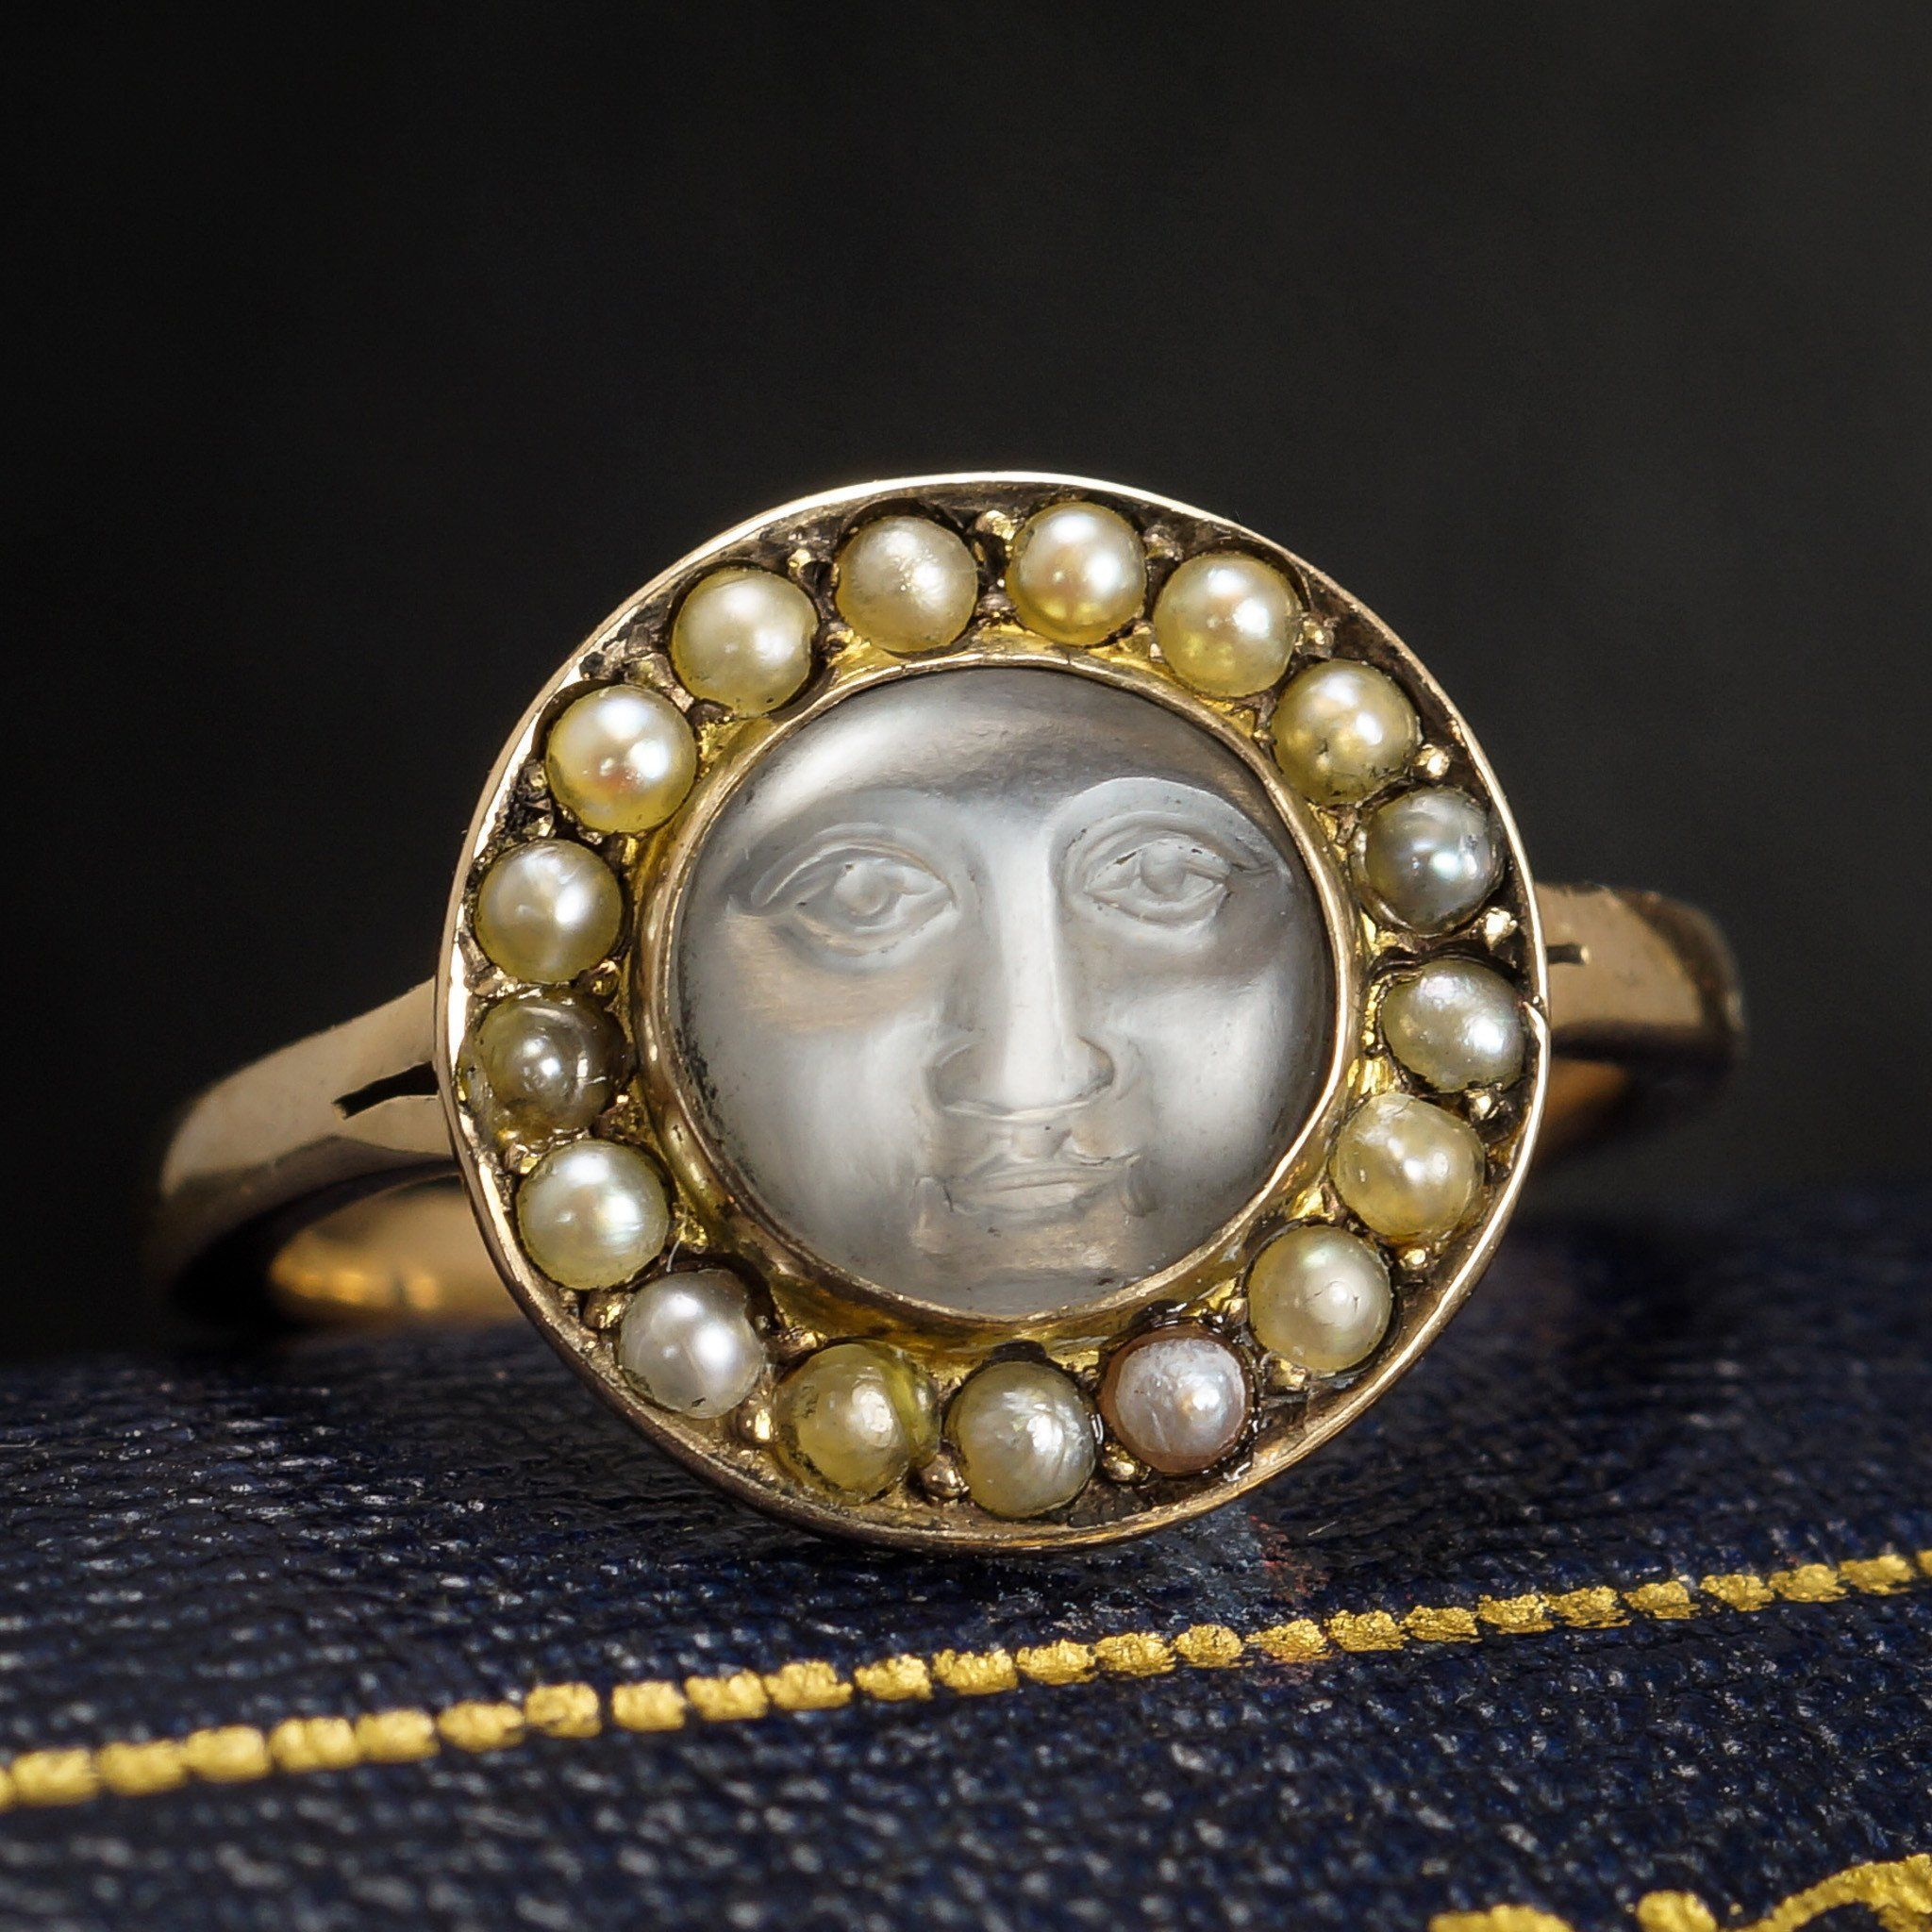 Edwardian Man in the Moon Ring